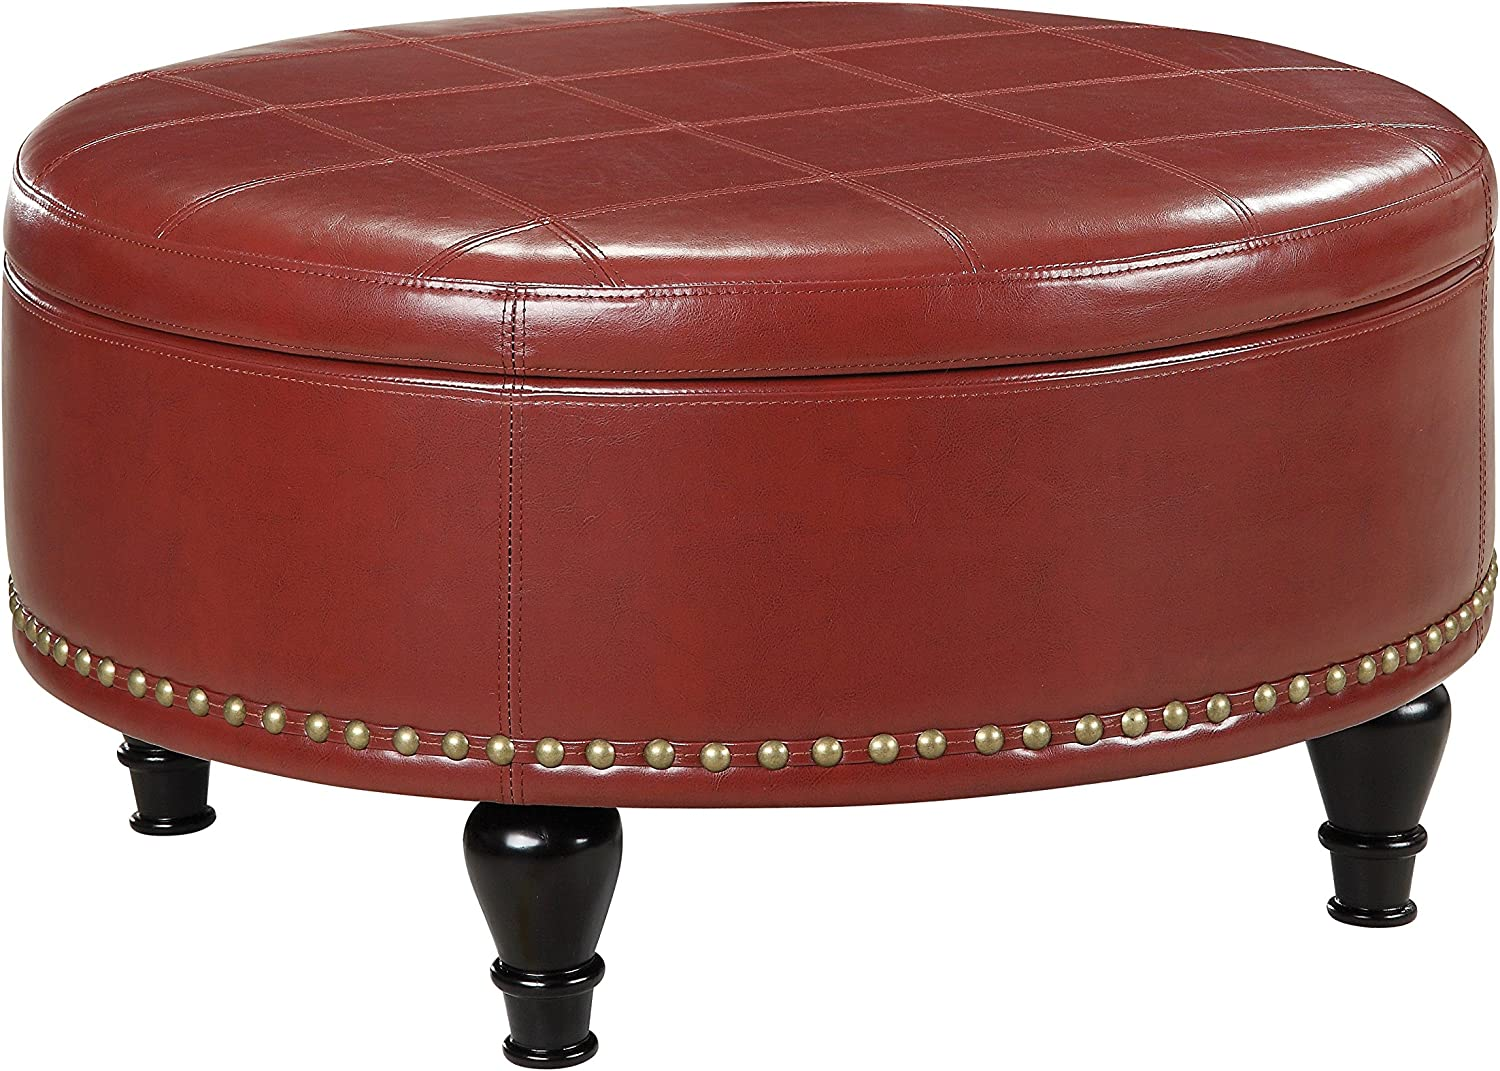 INSPIRED by Bassett Augusta Eco Leather Round Storage Ottoman with Brass Color Nail Head Trim and Deep Espresso Legs, Crimson Red